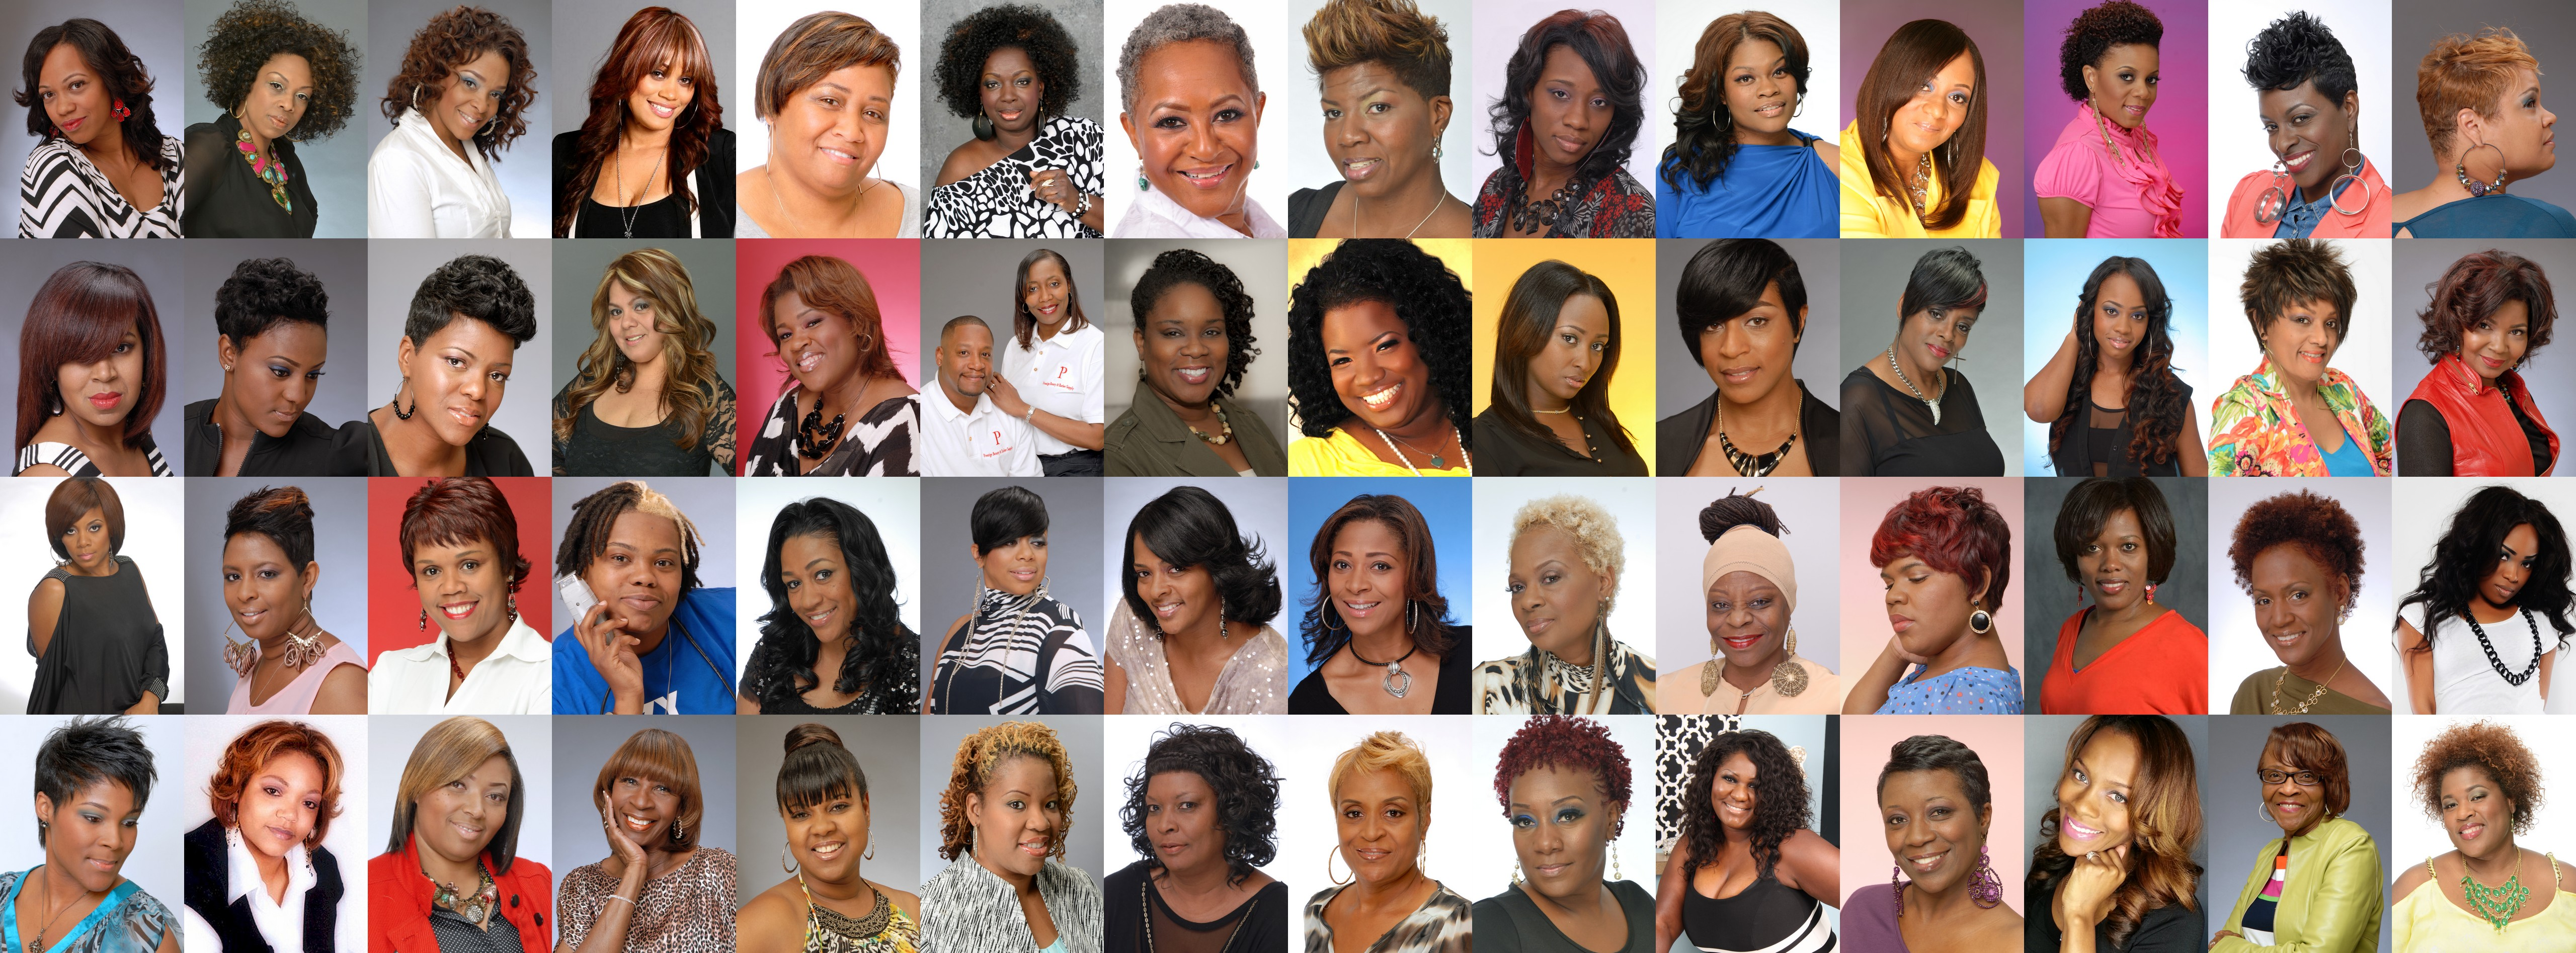 Salon Meyerland - #1 Relaxed and Natural Black Hair Care in Houston image 0